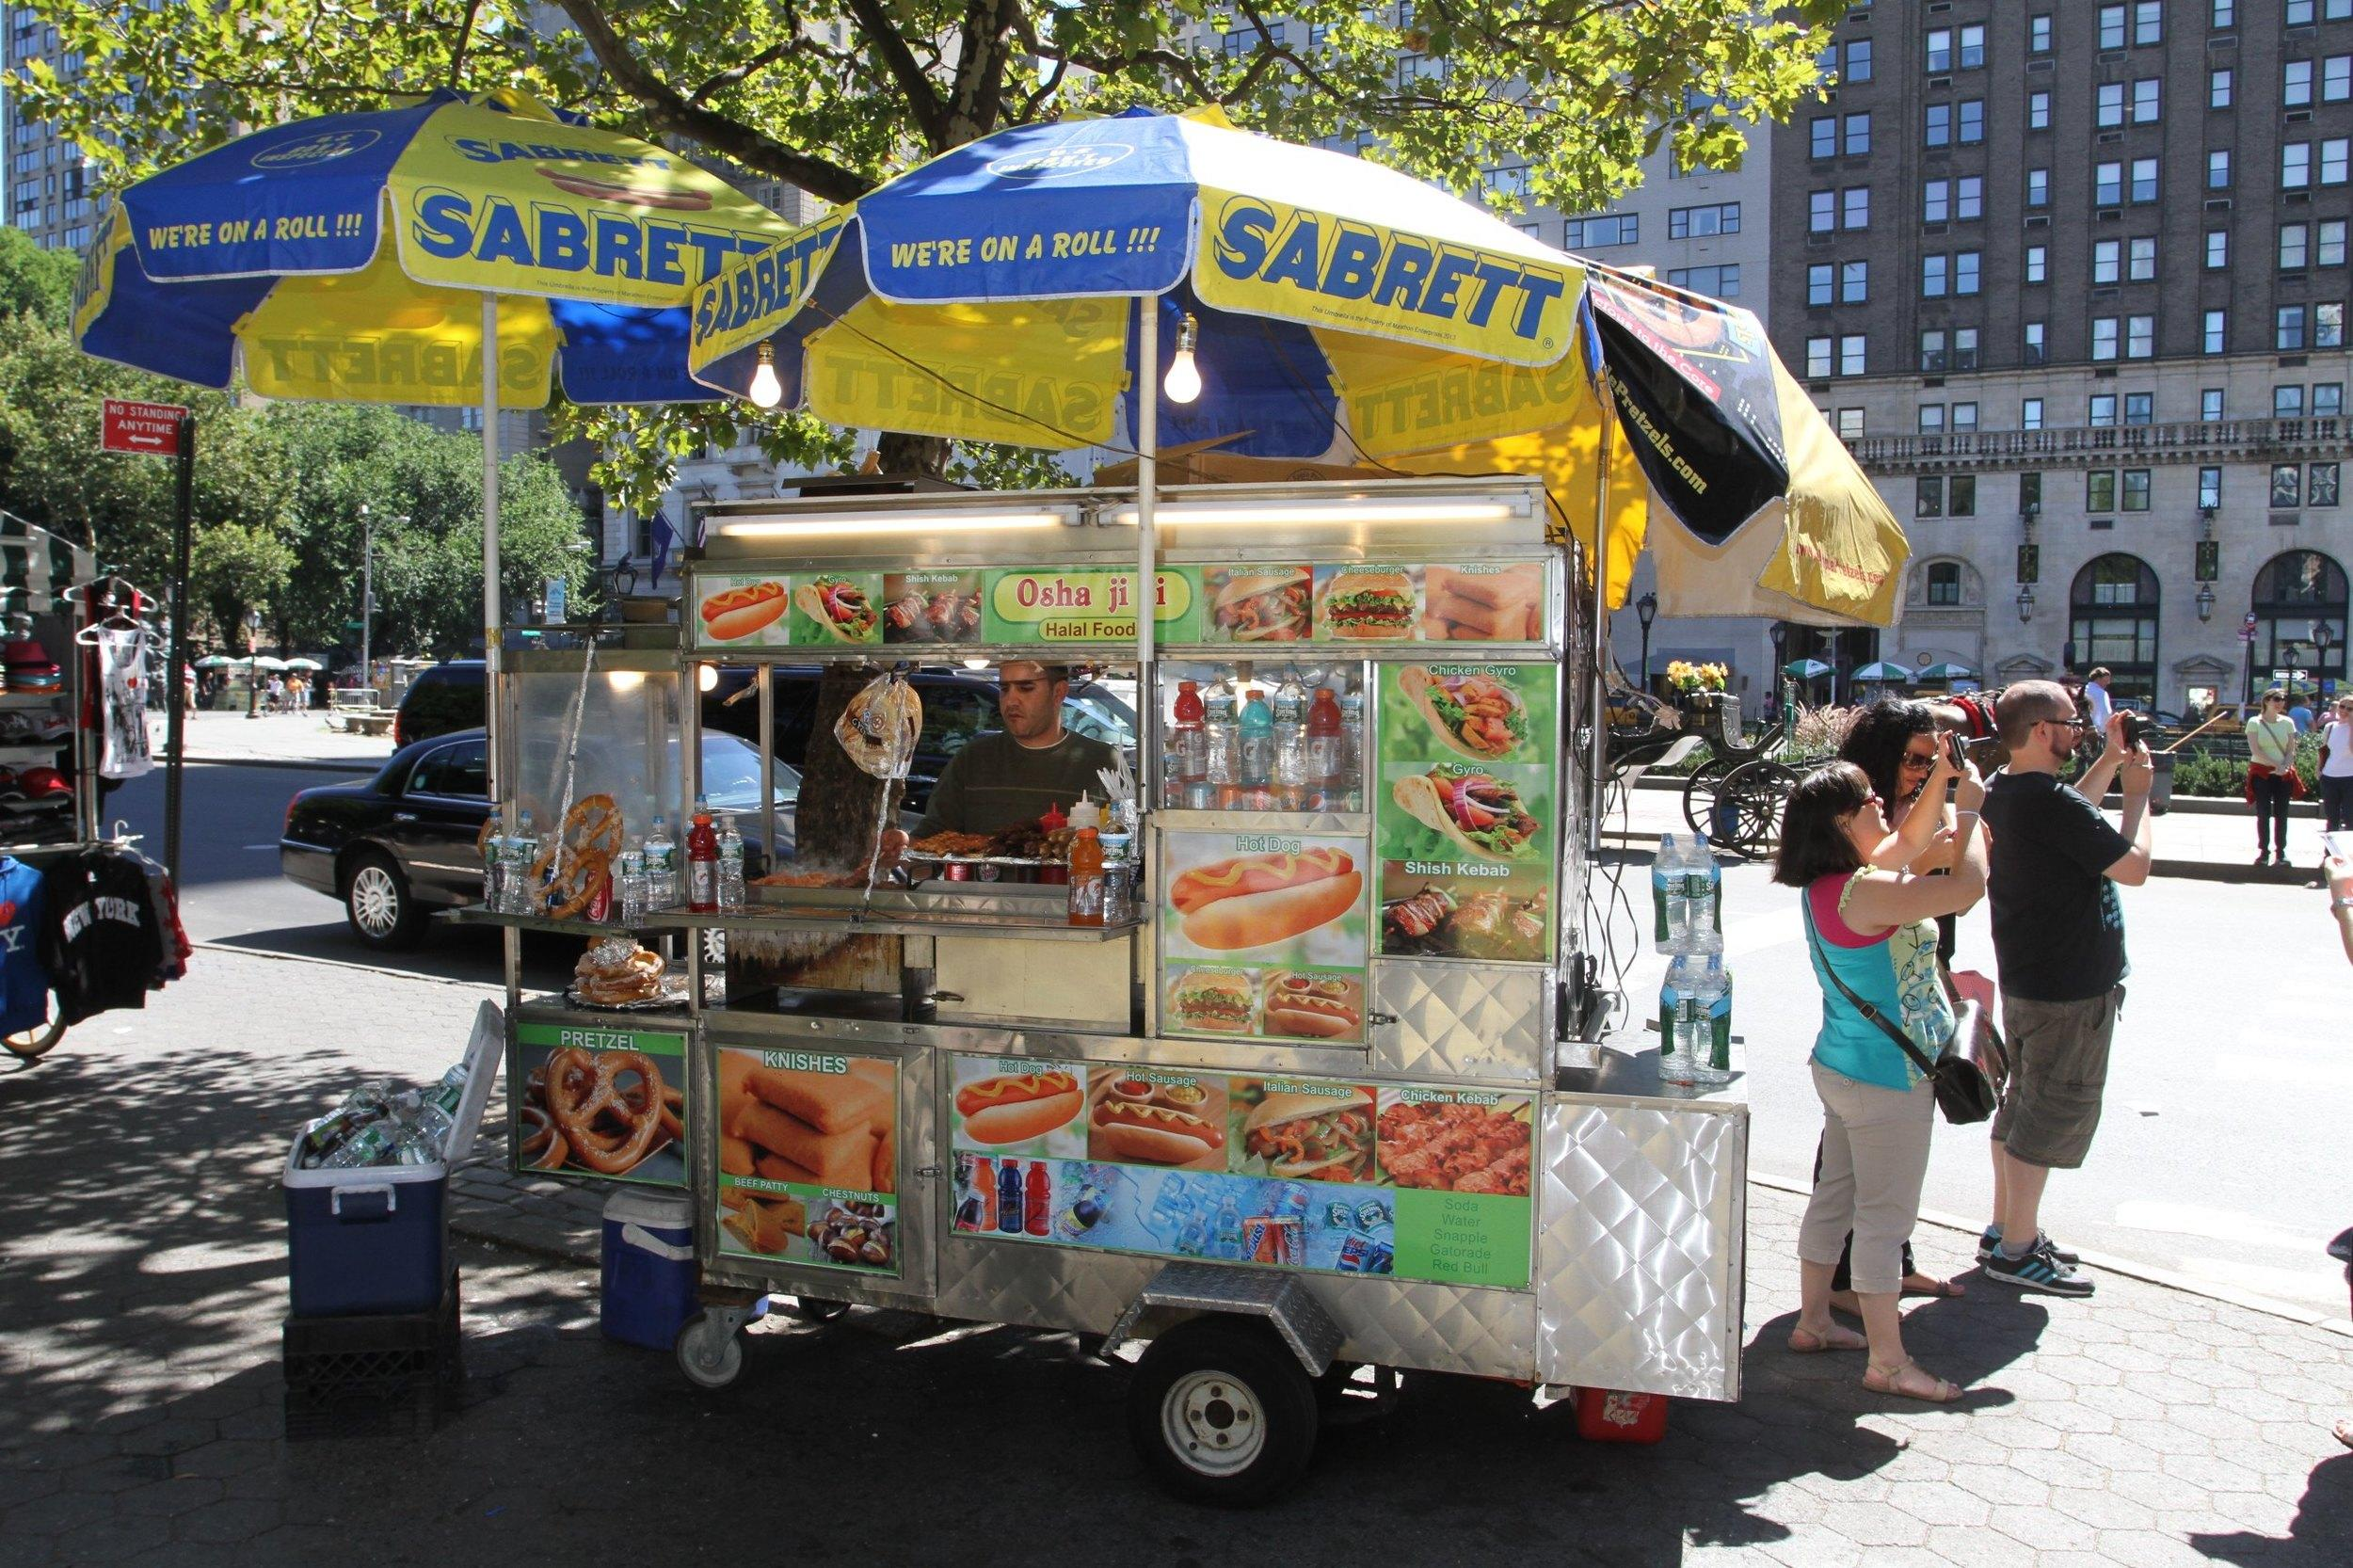 NEW YORK - AUGUST 24:  A street vendor selling food on August 24, 2013 on Fifth Avenue in New York City.  (Photo by Waring Abbott/Getty Images)